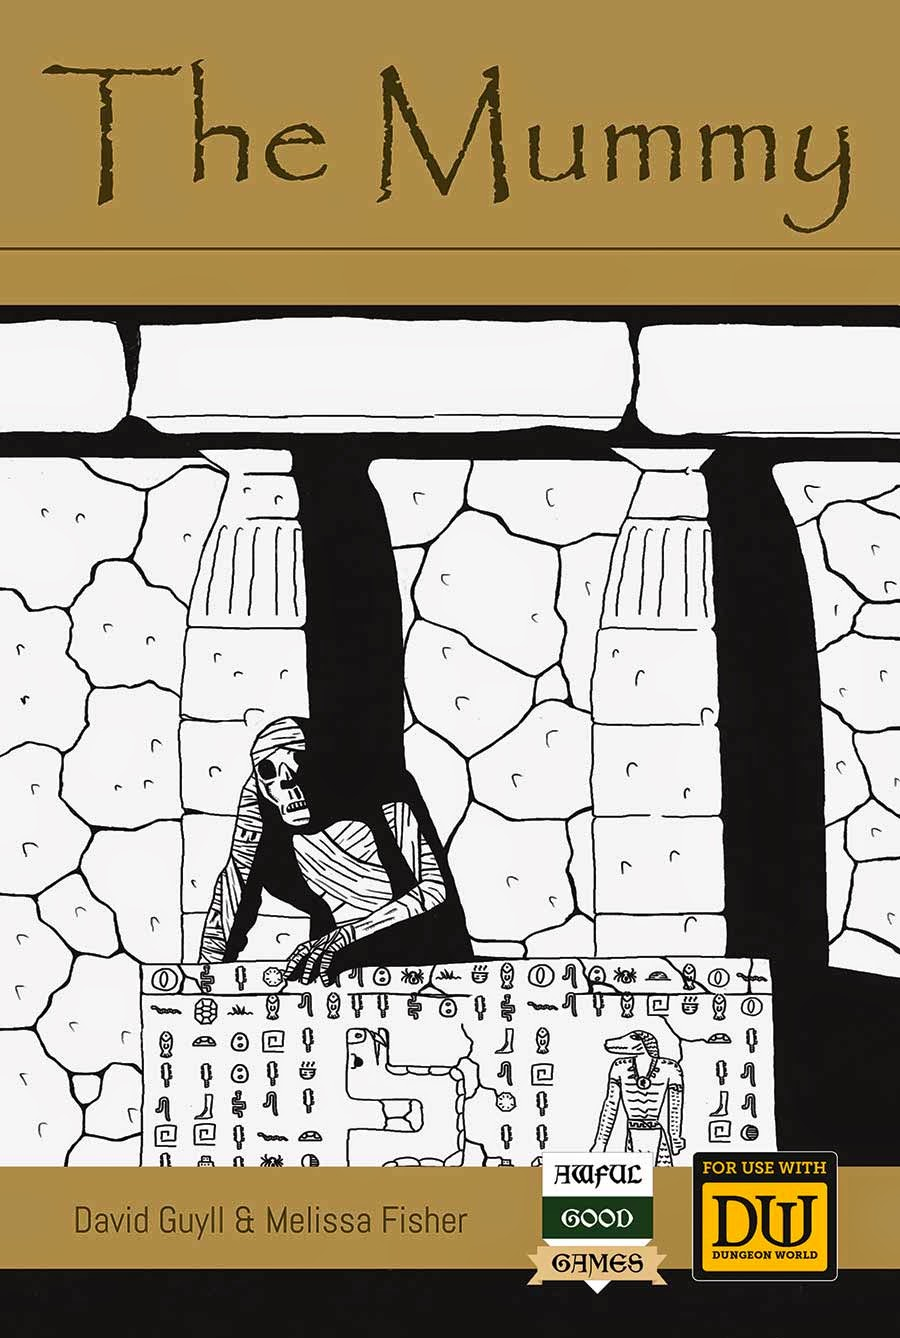 Dungeon World: The Mummy (And Other Stuff) - Points of Light